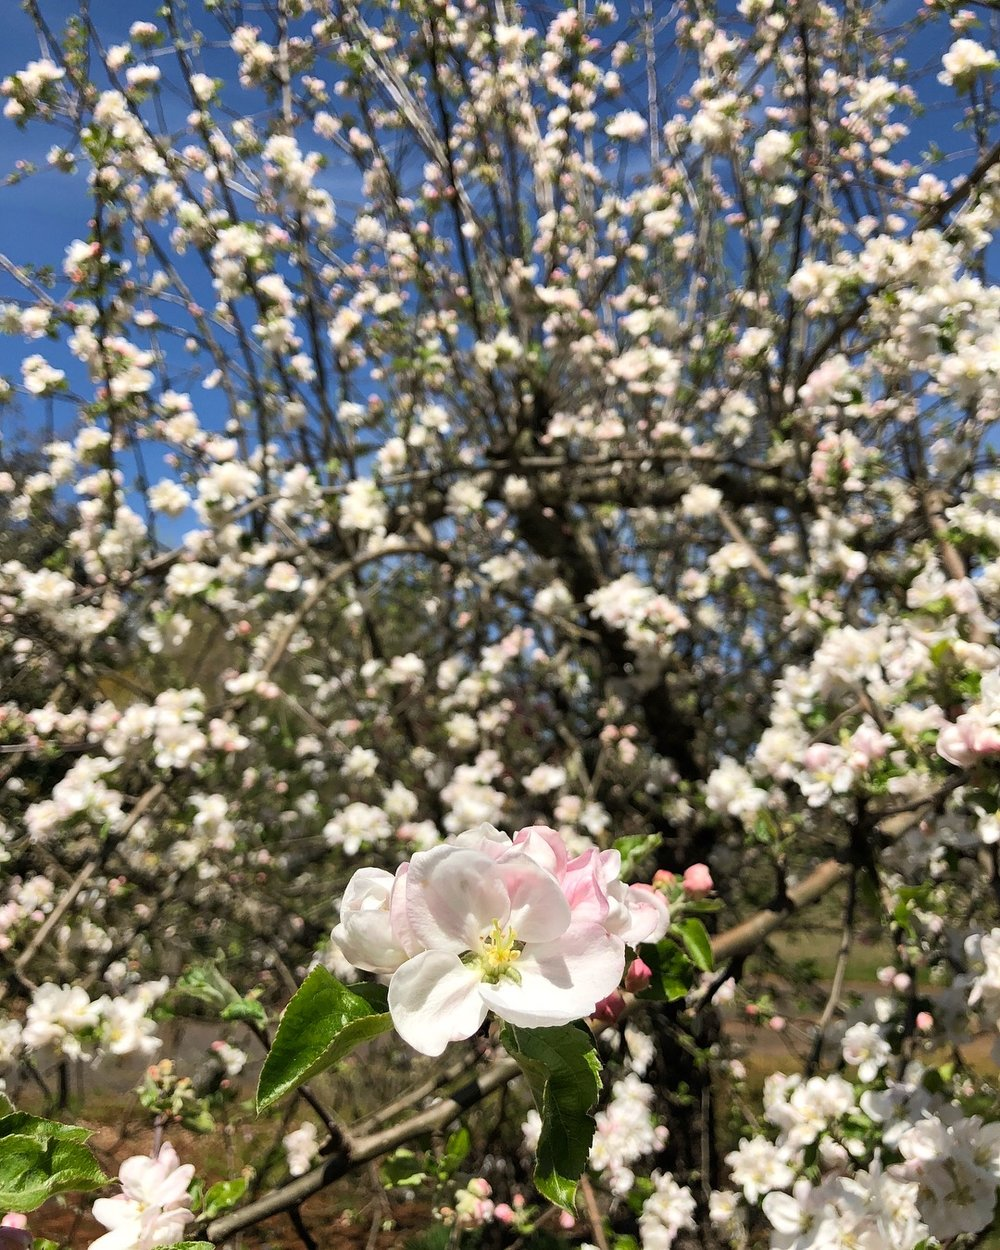 Orchard apples in bloom